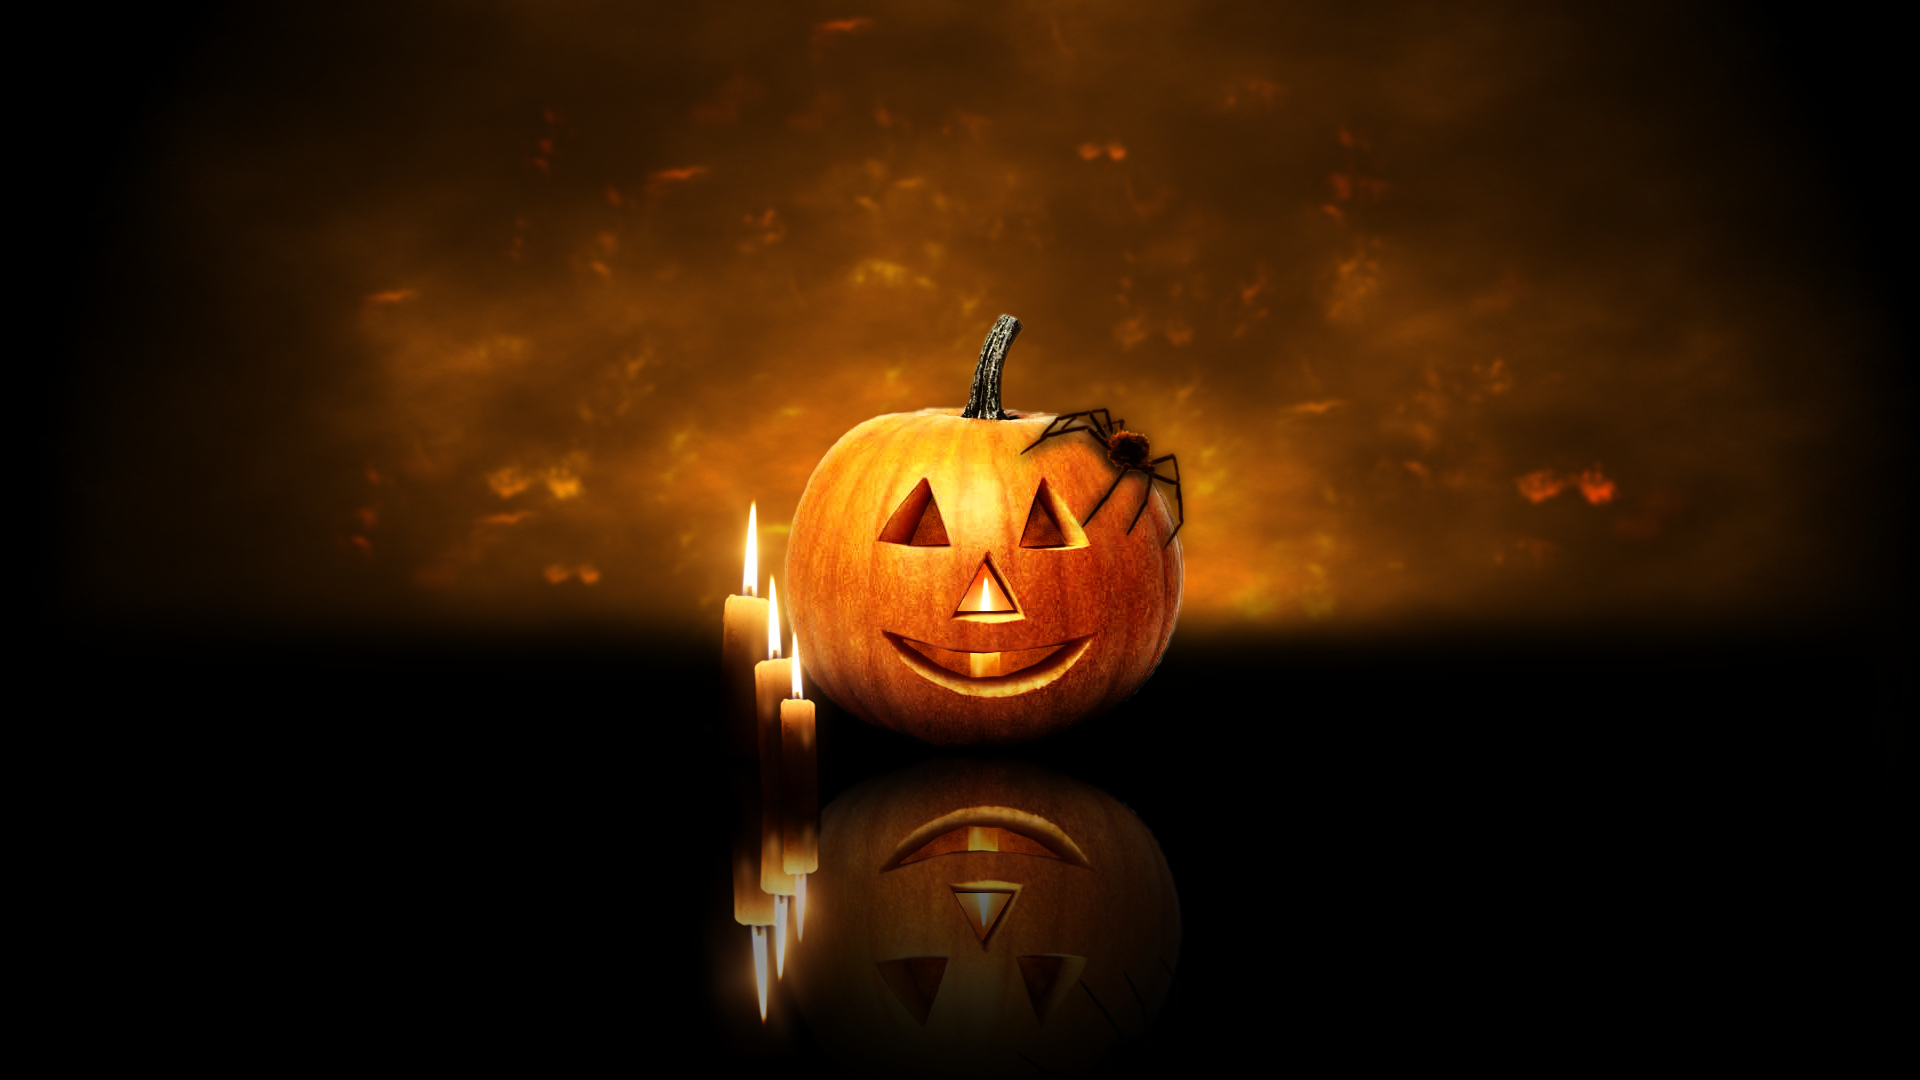 Wallpapers Full Hd Para Halloween Muylinux